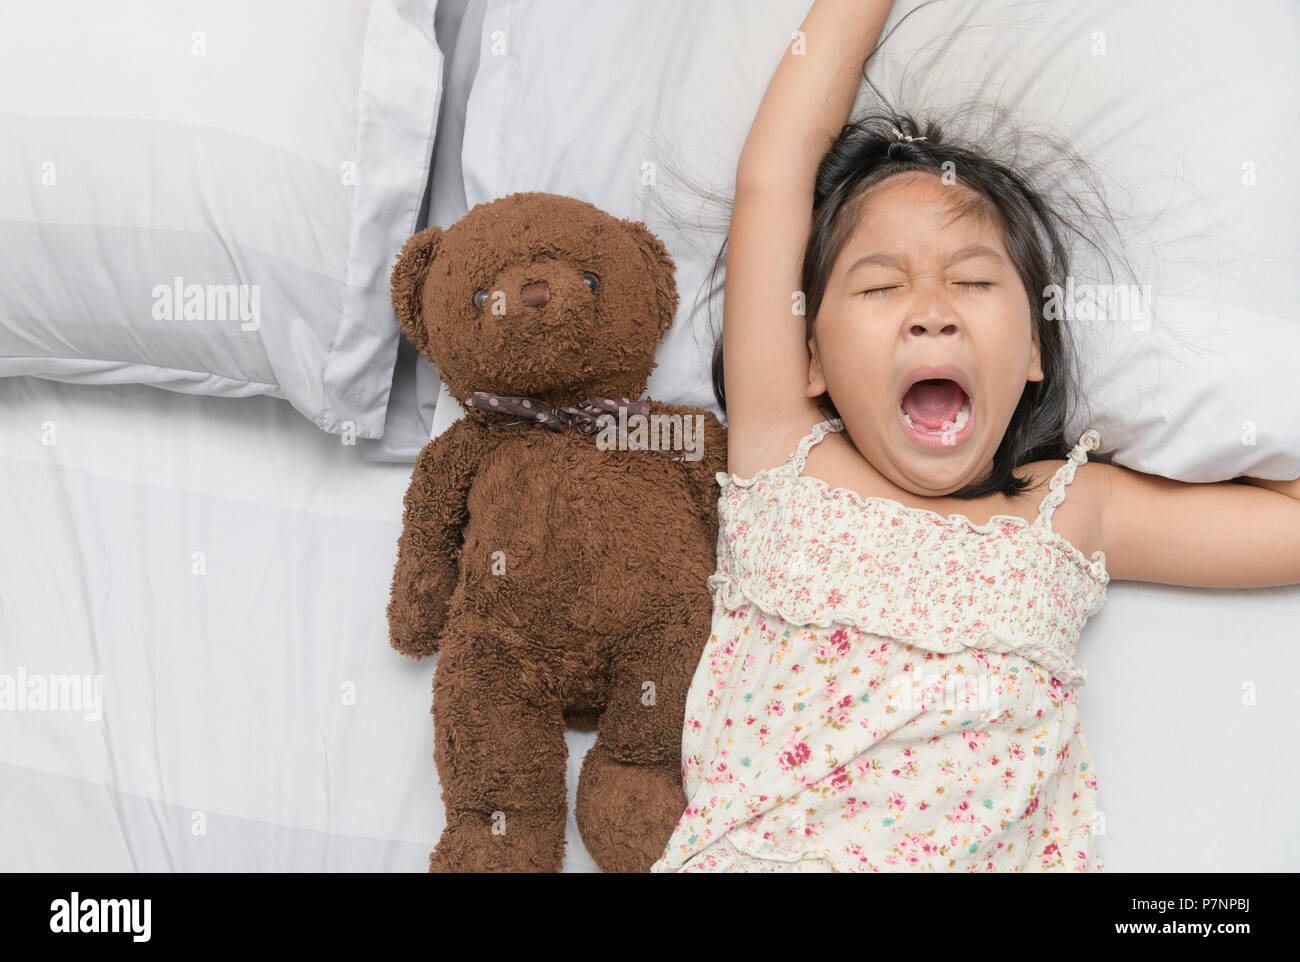 Little girl yawn and sleep on bed with teddy bear doll, Health care and relaxation concept - Stock Image